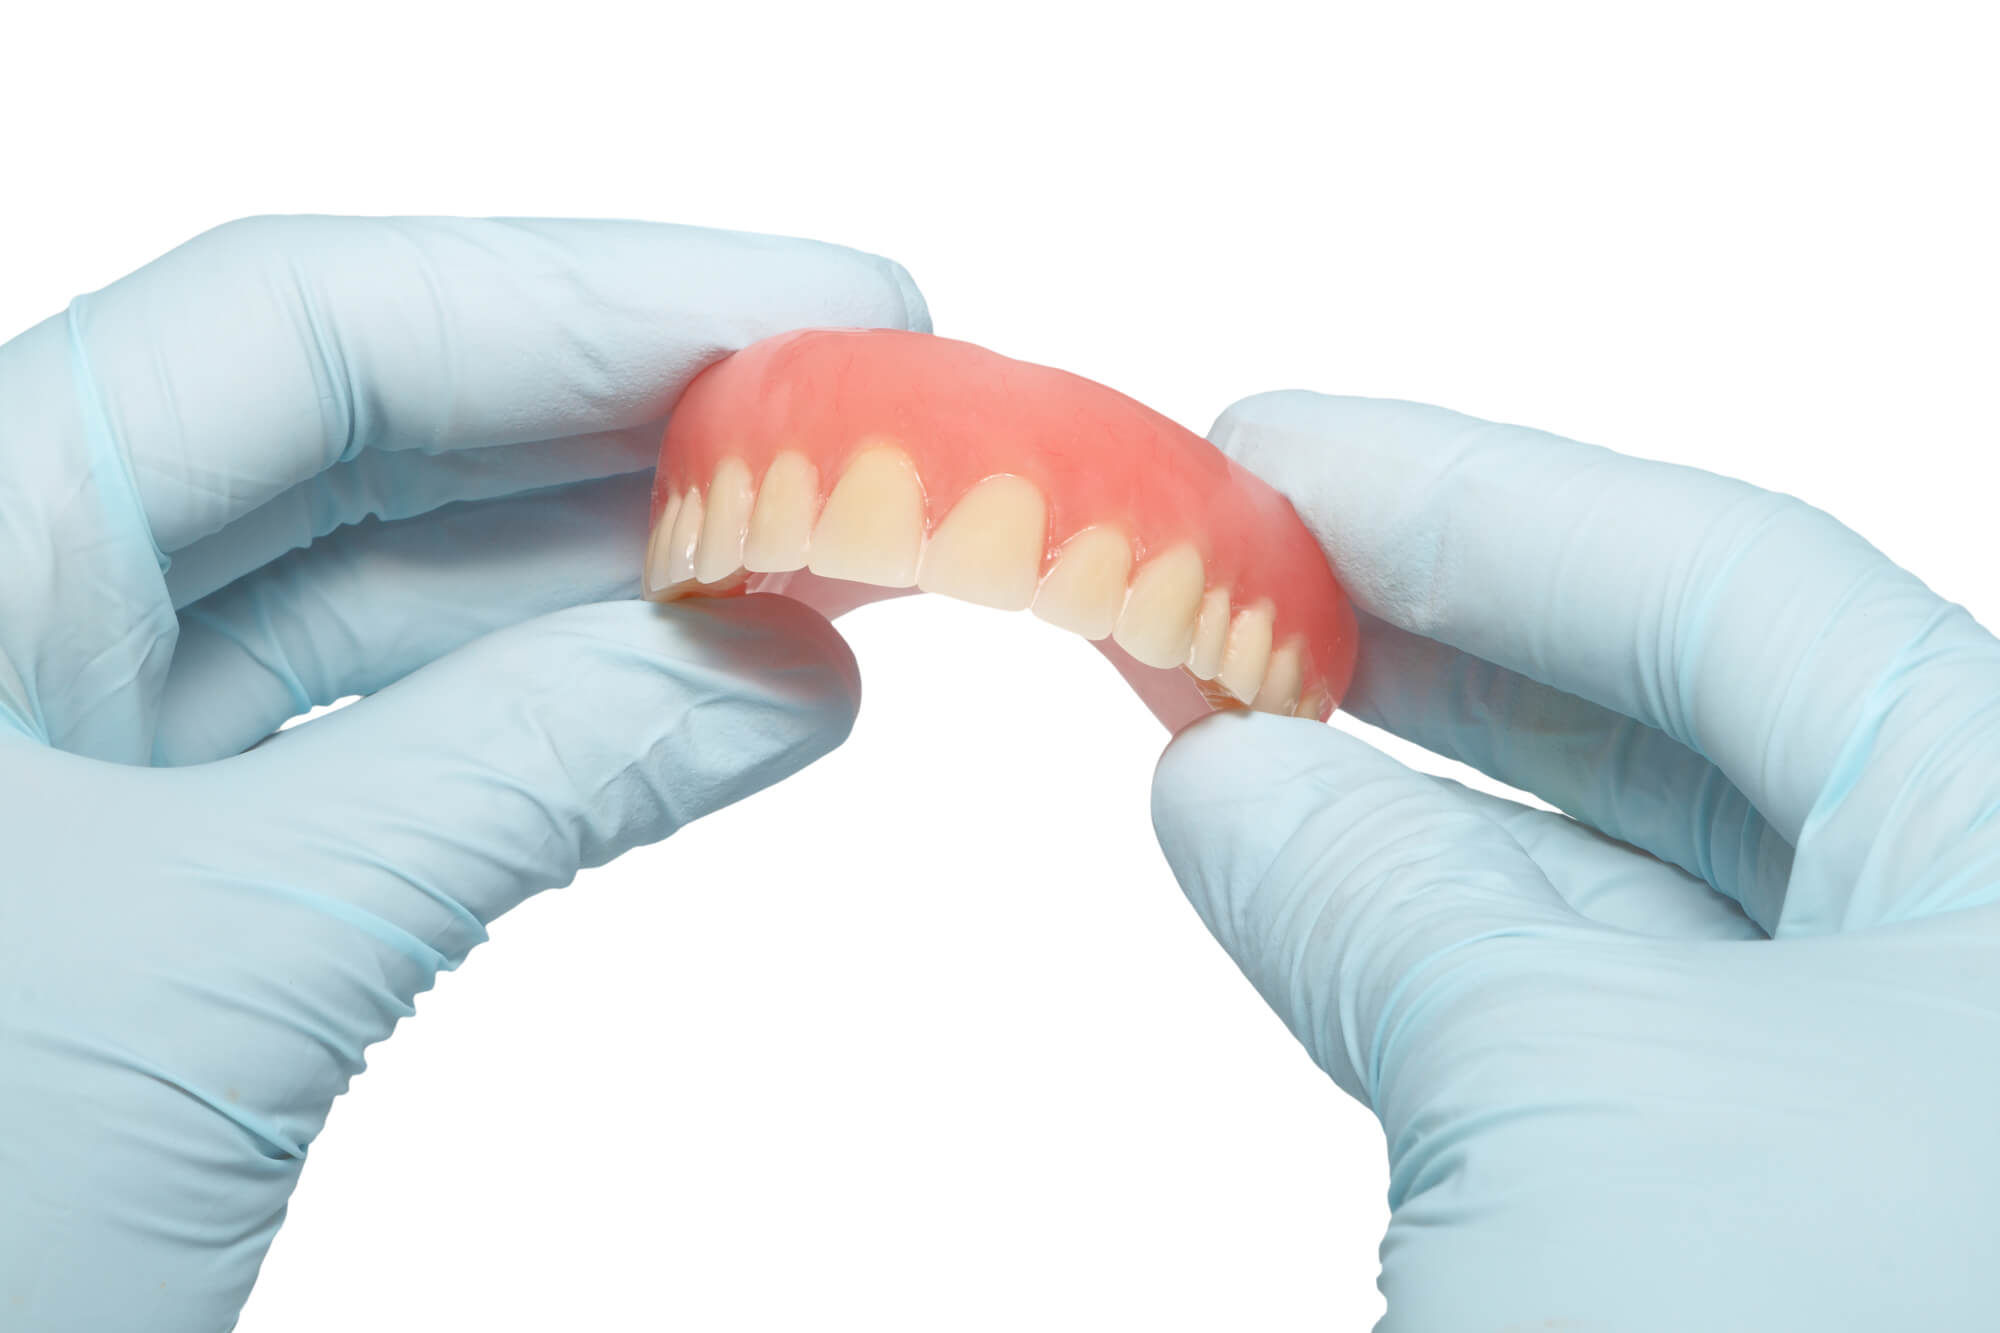 Where can I find Dentures Palm Beach Gardens?